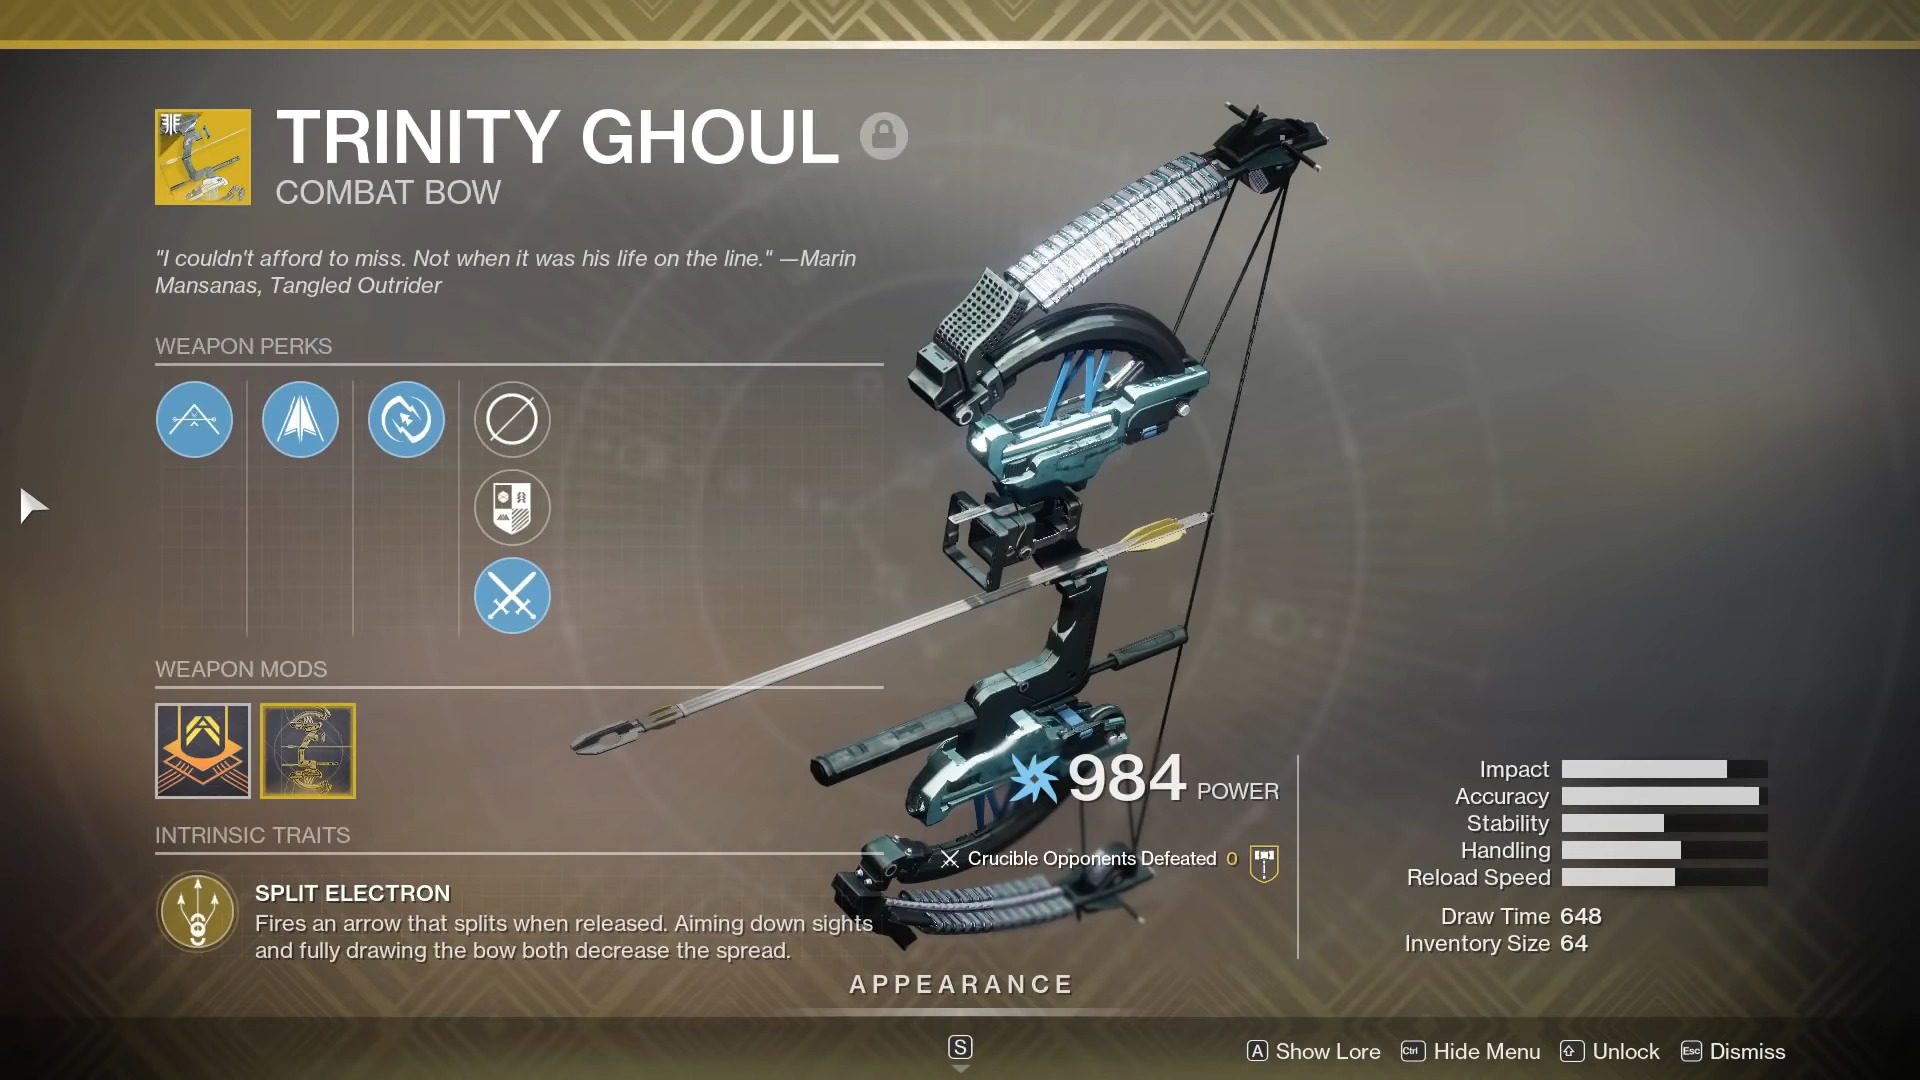 Destiny 2: Xur Location And Inventory For Weekend Of December 11th – Trinity Ghoul Exotic Bow For Sale